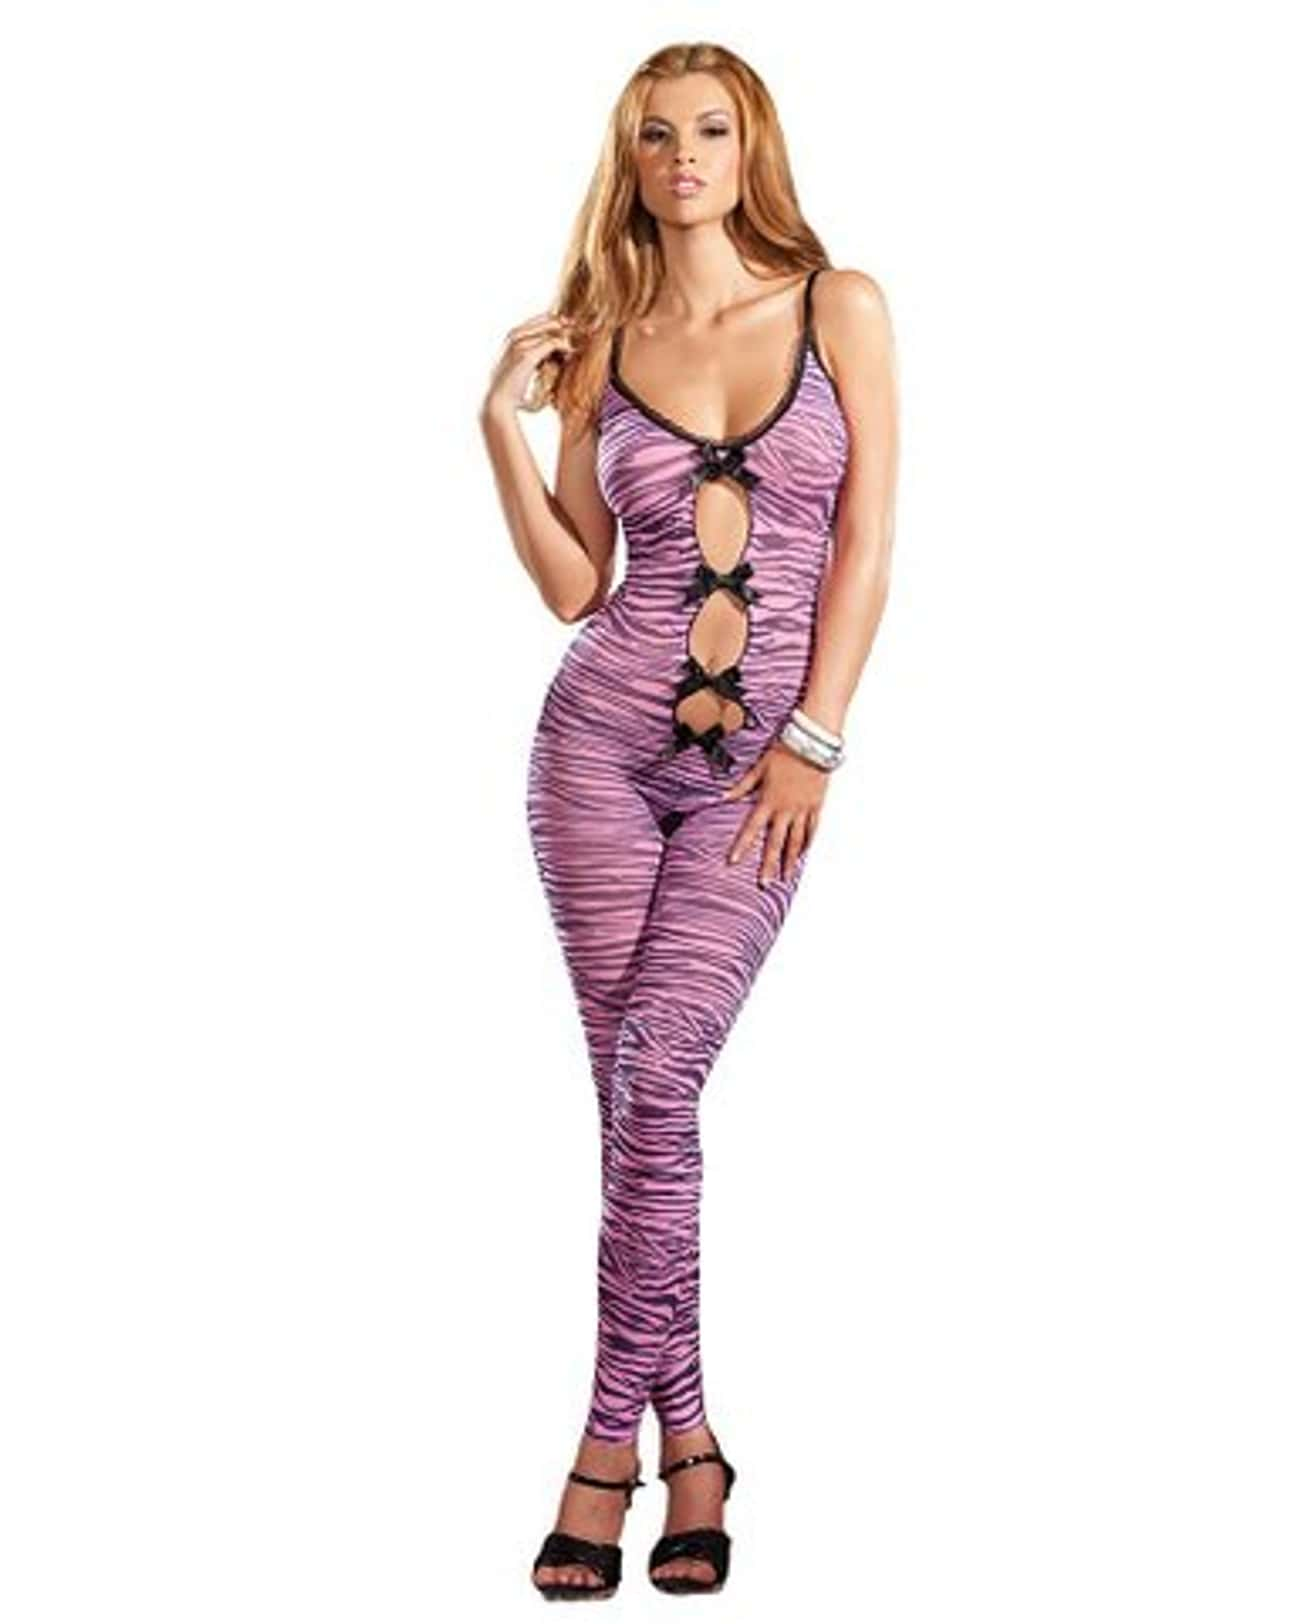 Zebra Print Crotchless Bodysto is listed (or ranked) 3 on the list The Most Insane Lingerie You Can Buy